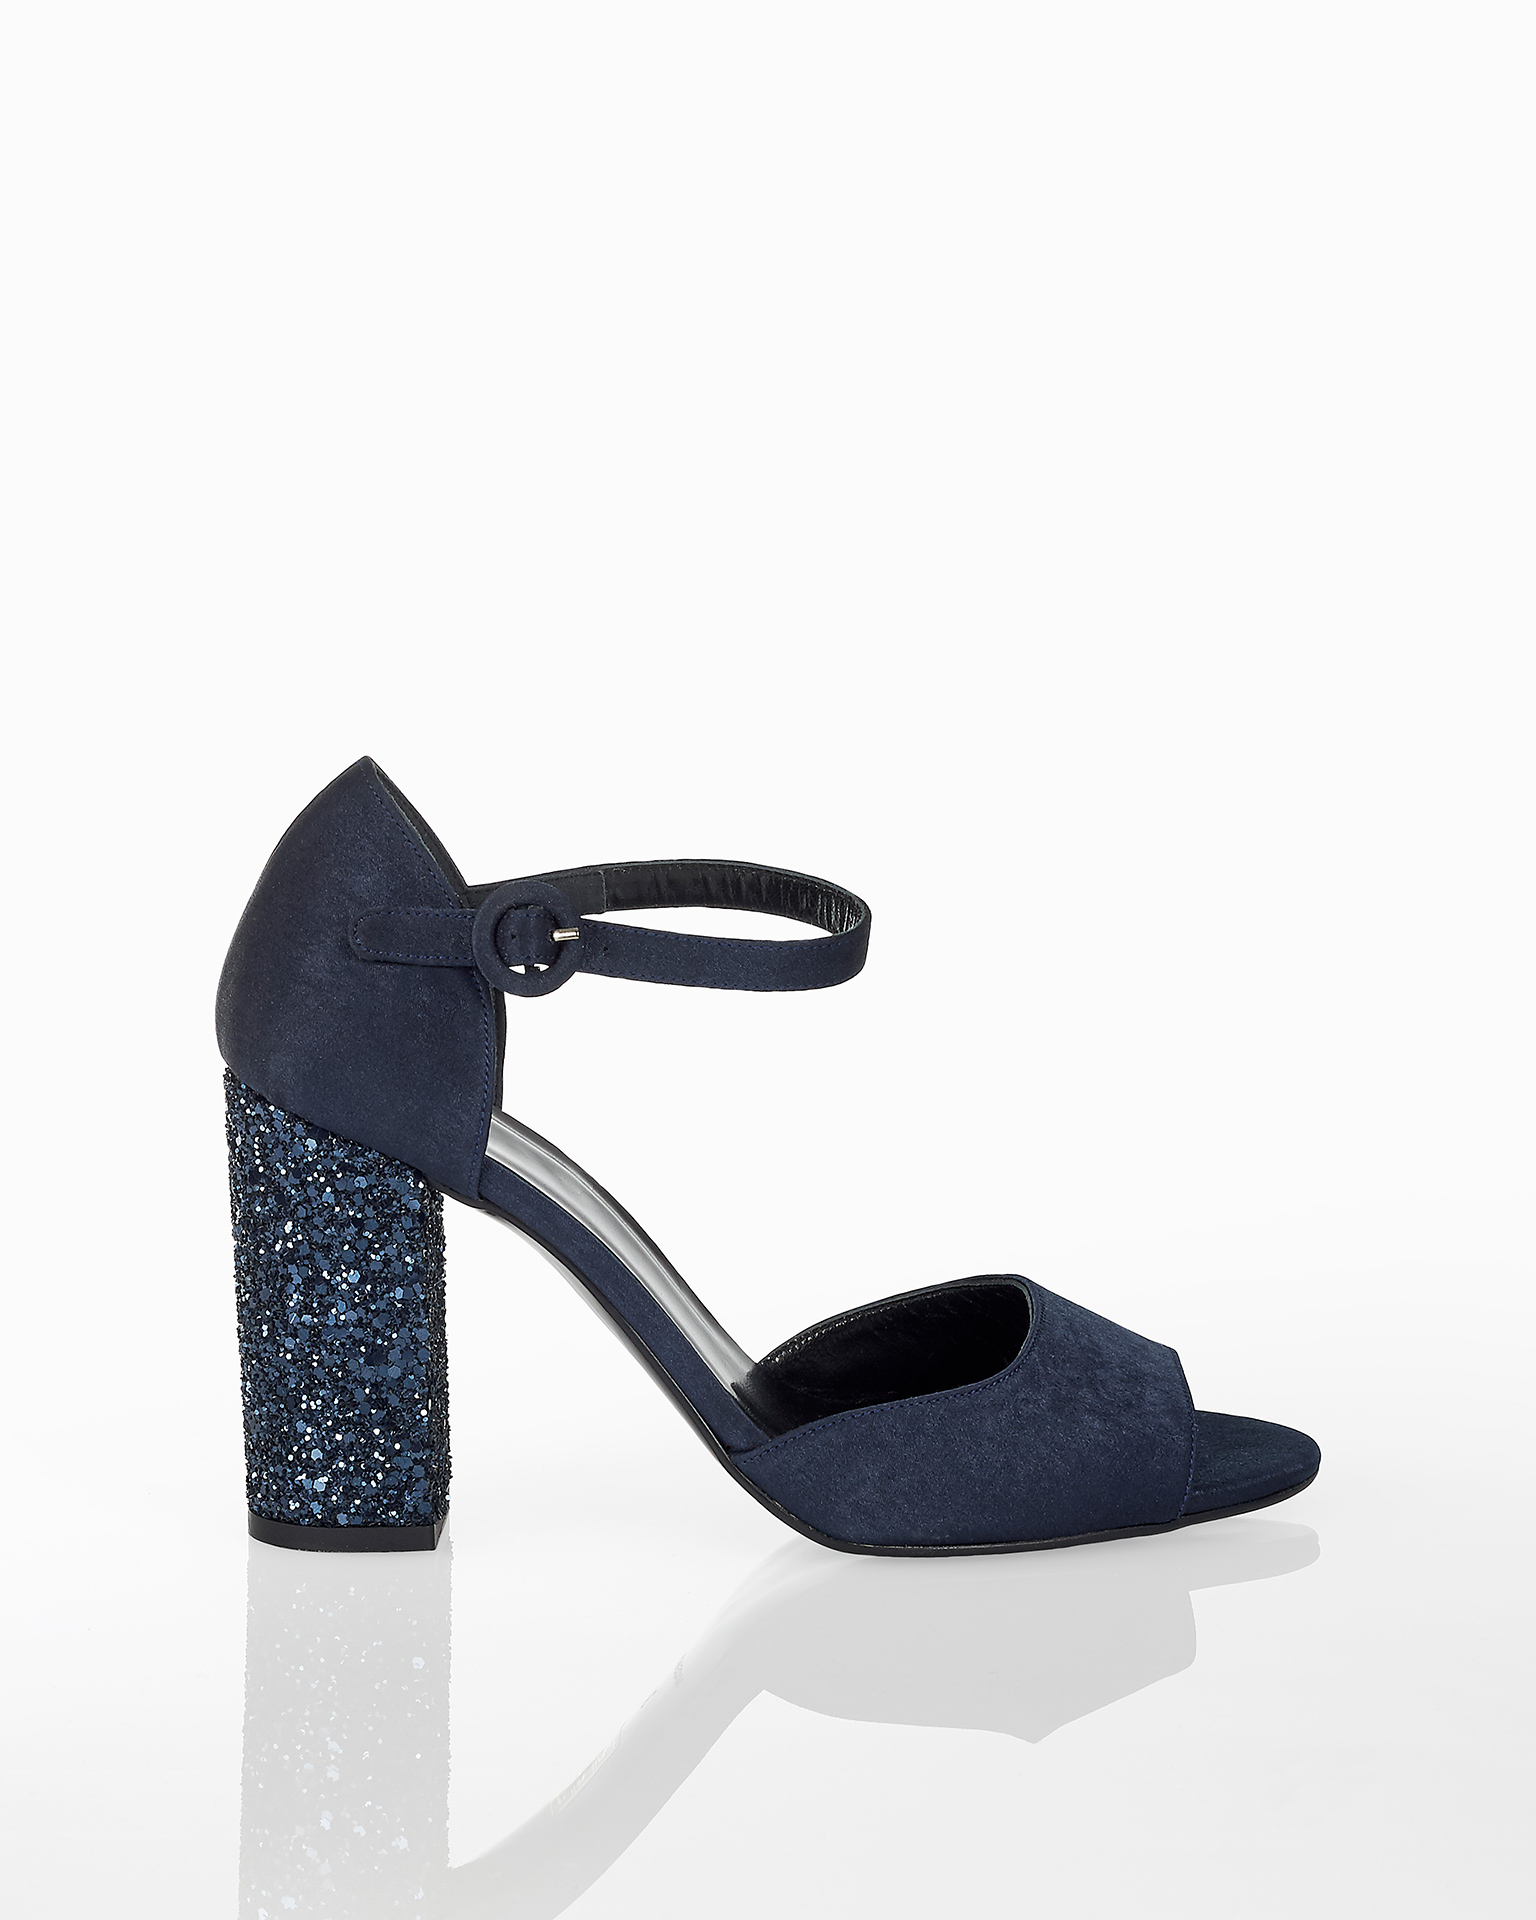 Satin cocktail sandals with closed glitter mid heel, available in a navy blue, lead and black. 2018 FIESTA AIRE BARCELONA Collection.